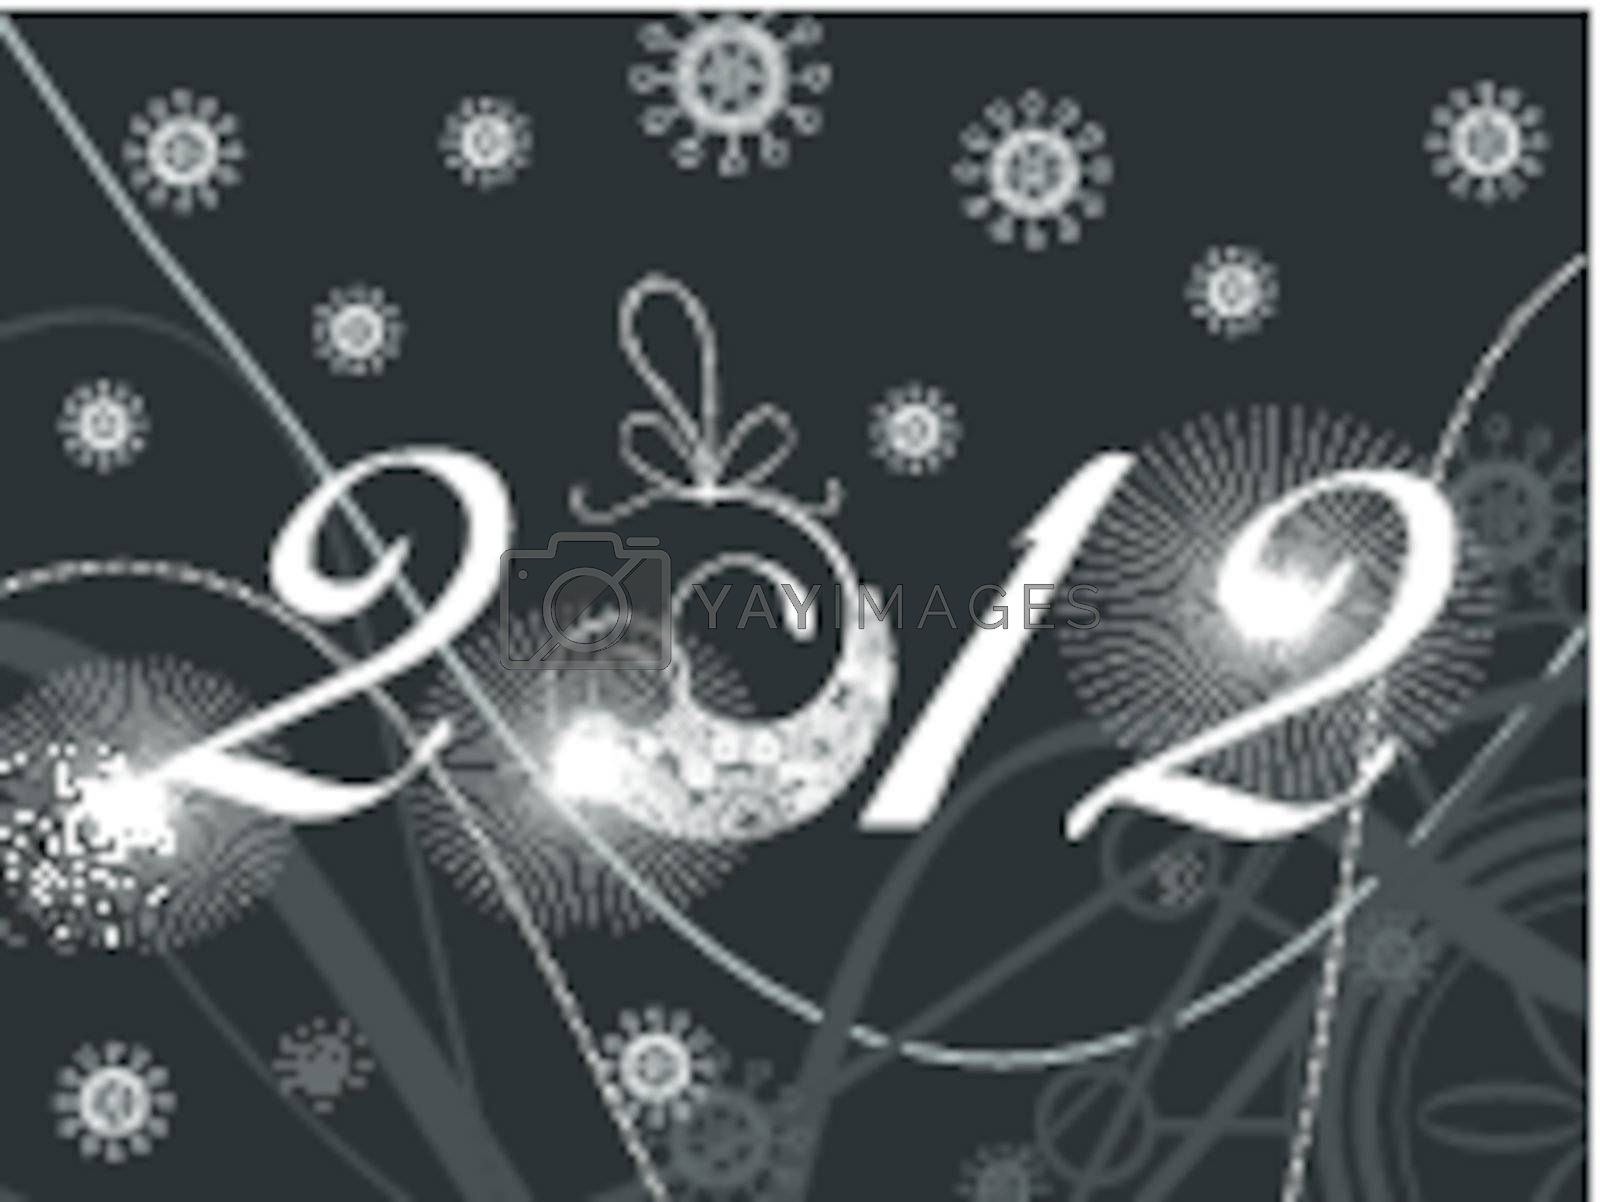 abstract artwork illustration for 2012